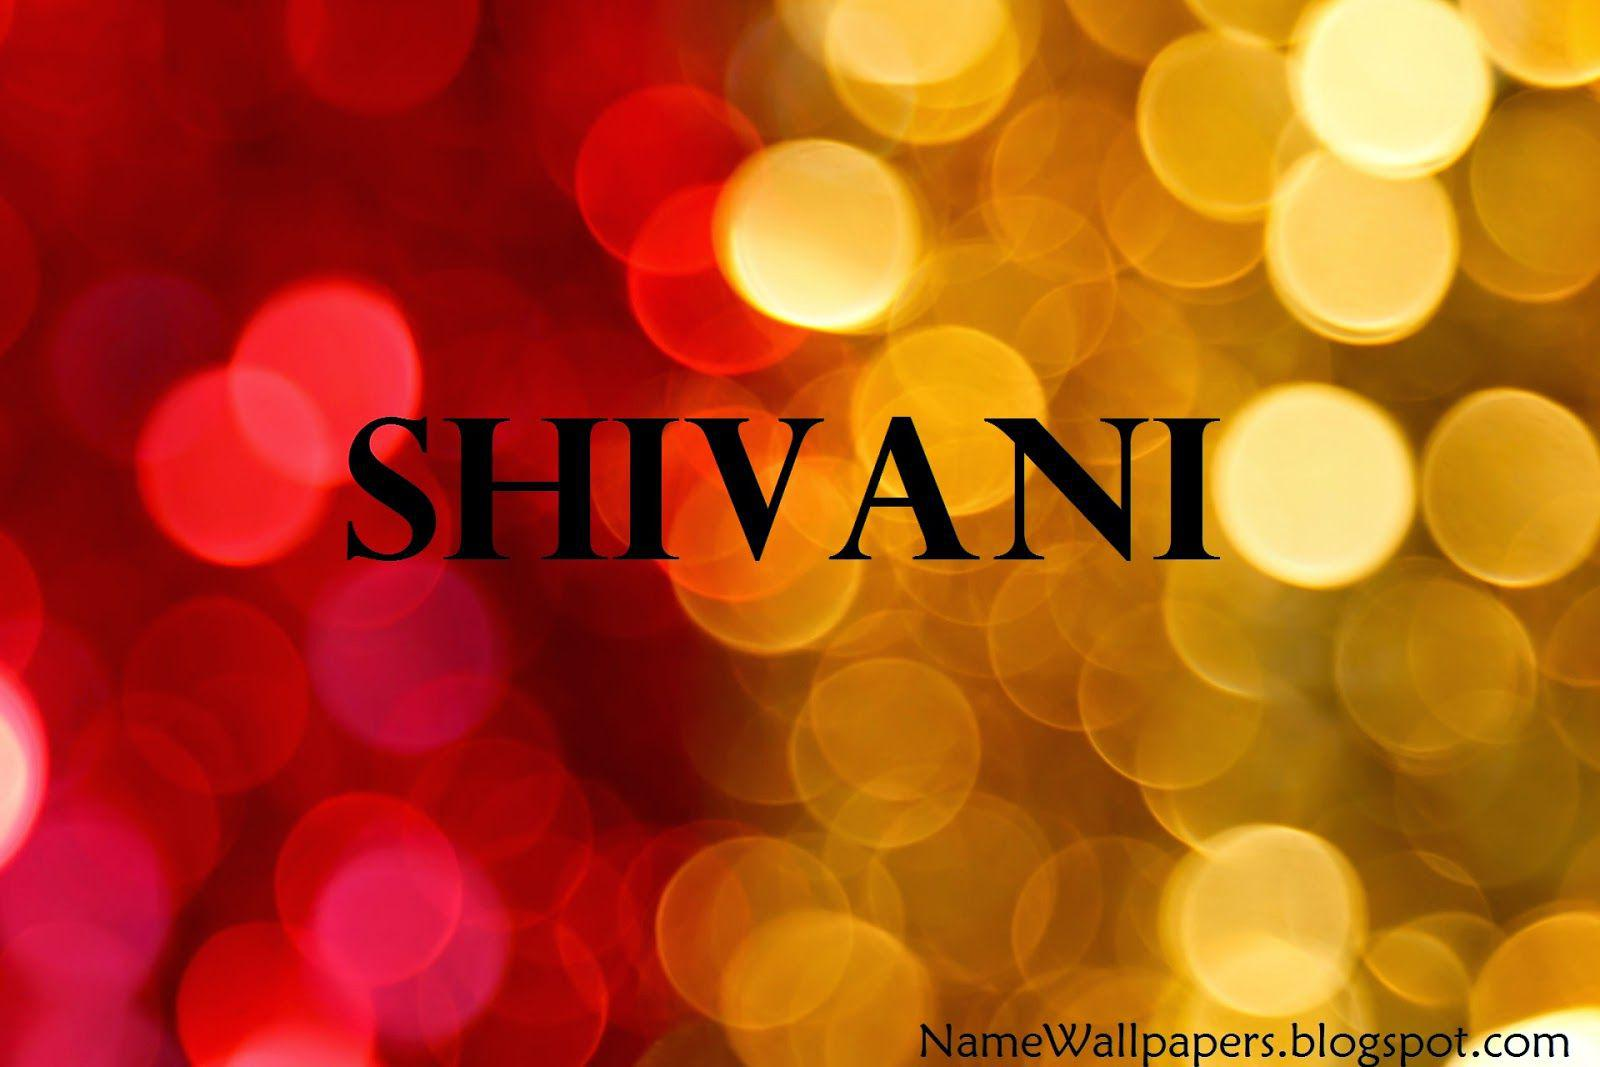 Shivani Name Wallpaper fedinvestonline Best Games Wallpapers